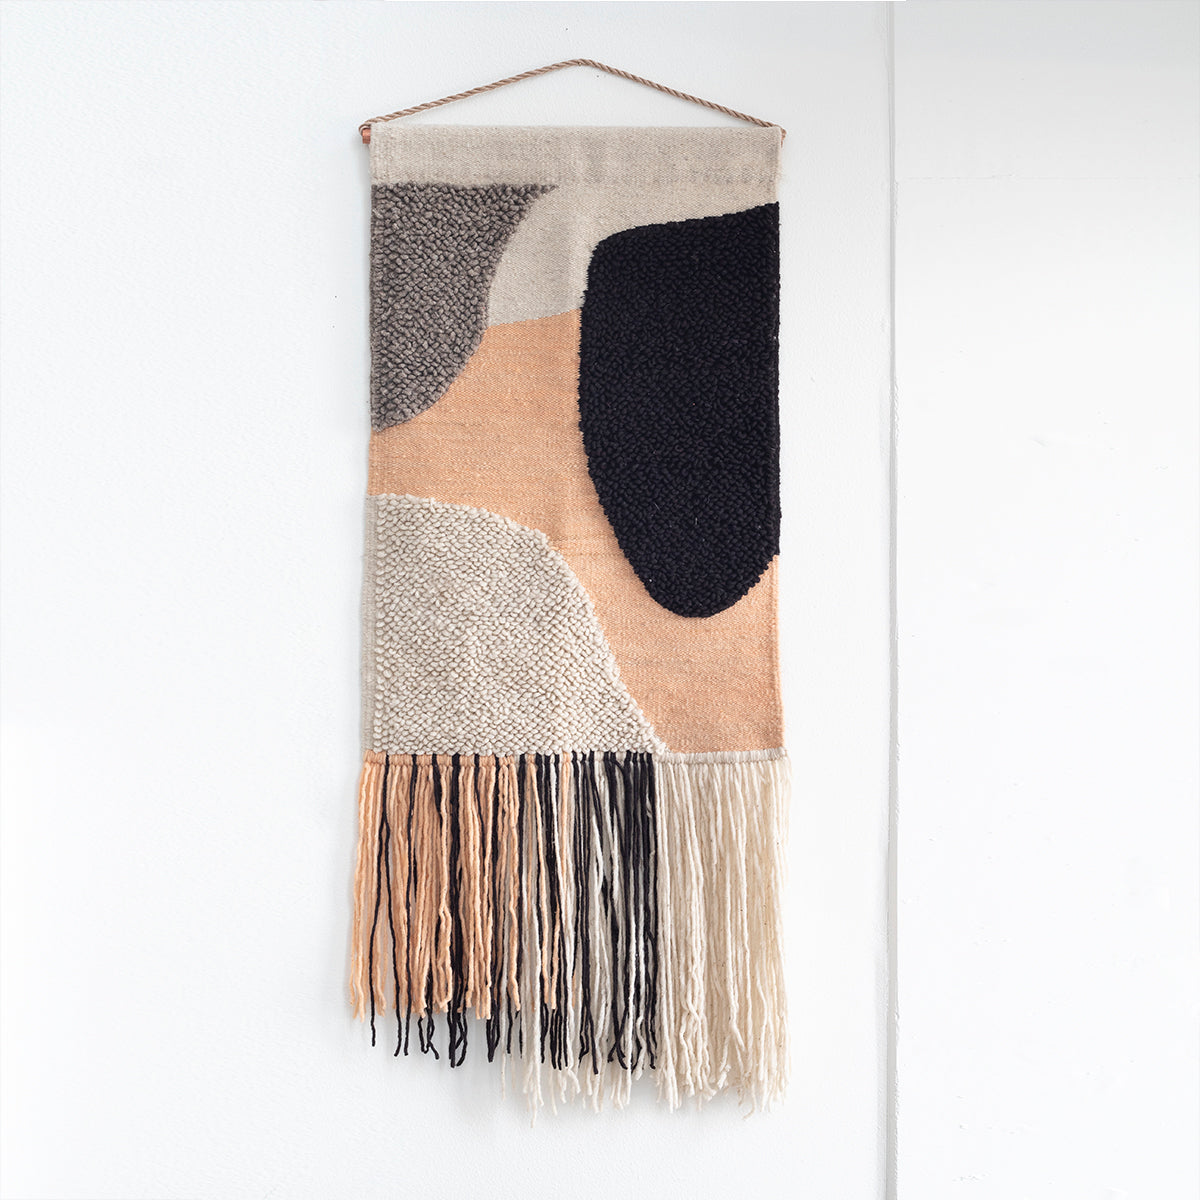 "TAPESTRY HAND WOVEN WALL HANGING ""FLOW"" BY CURA COLLECTION"